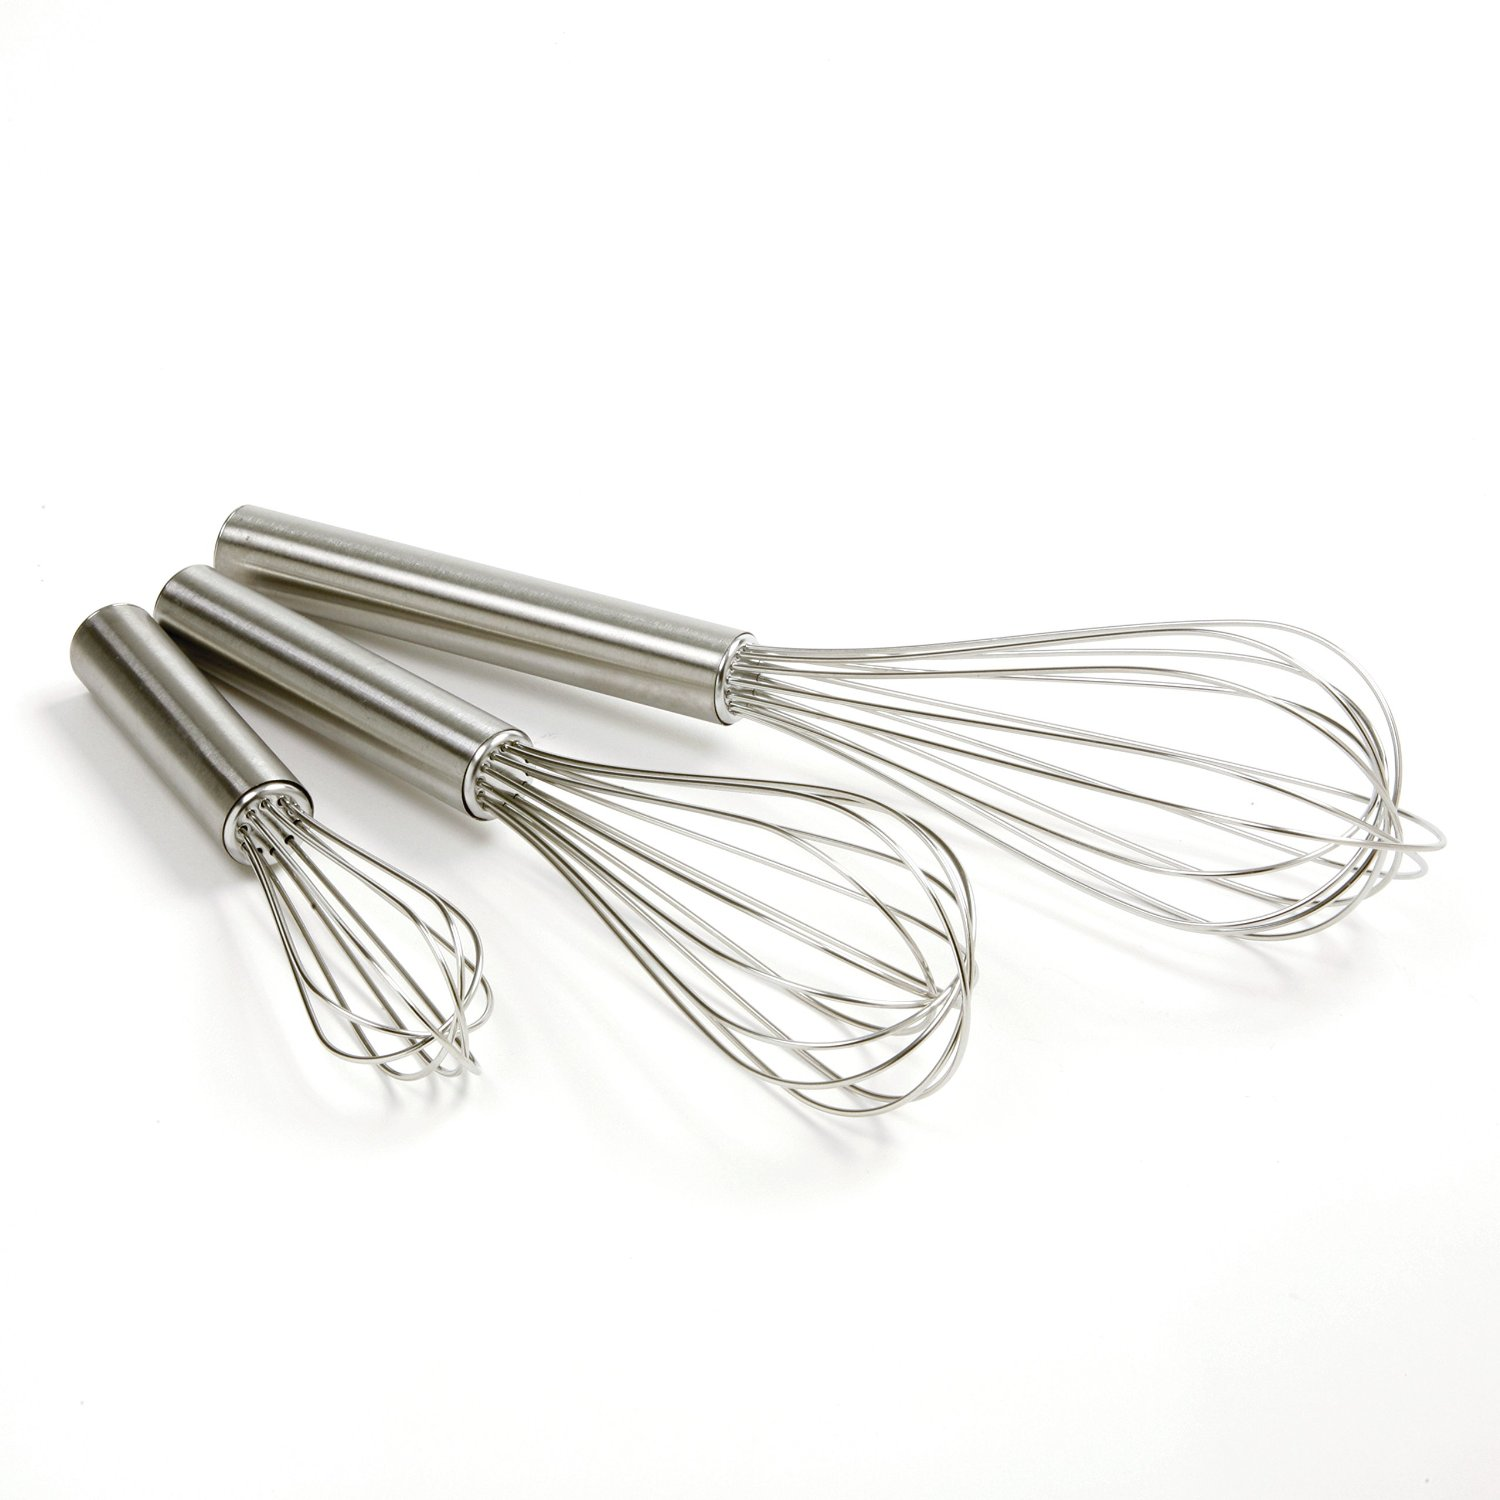 3Pcs Steel Beat Mix Wire Whisk 8//10//12Inch set for Manual Home Cakes Baking